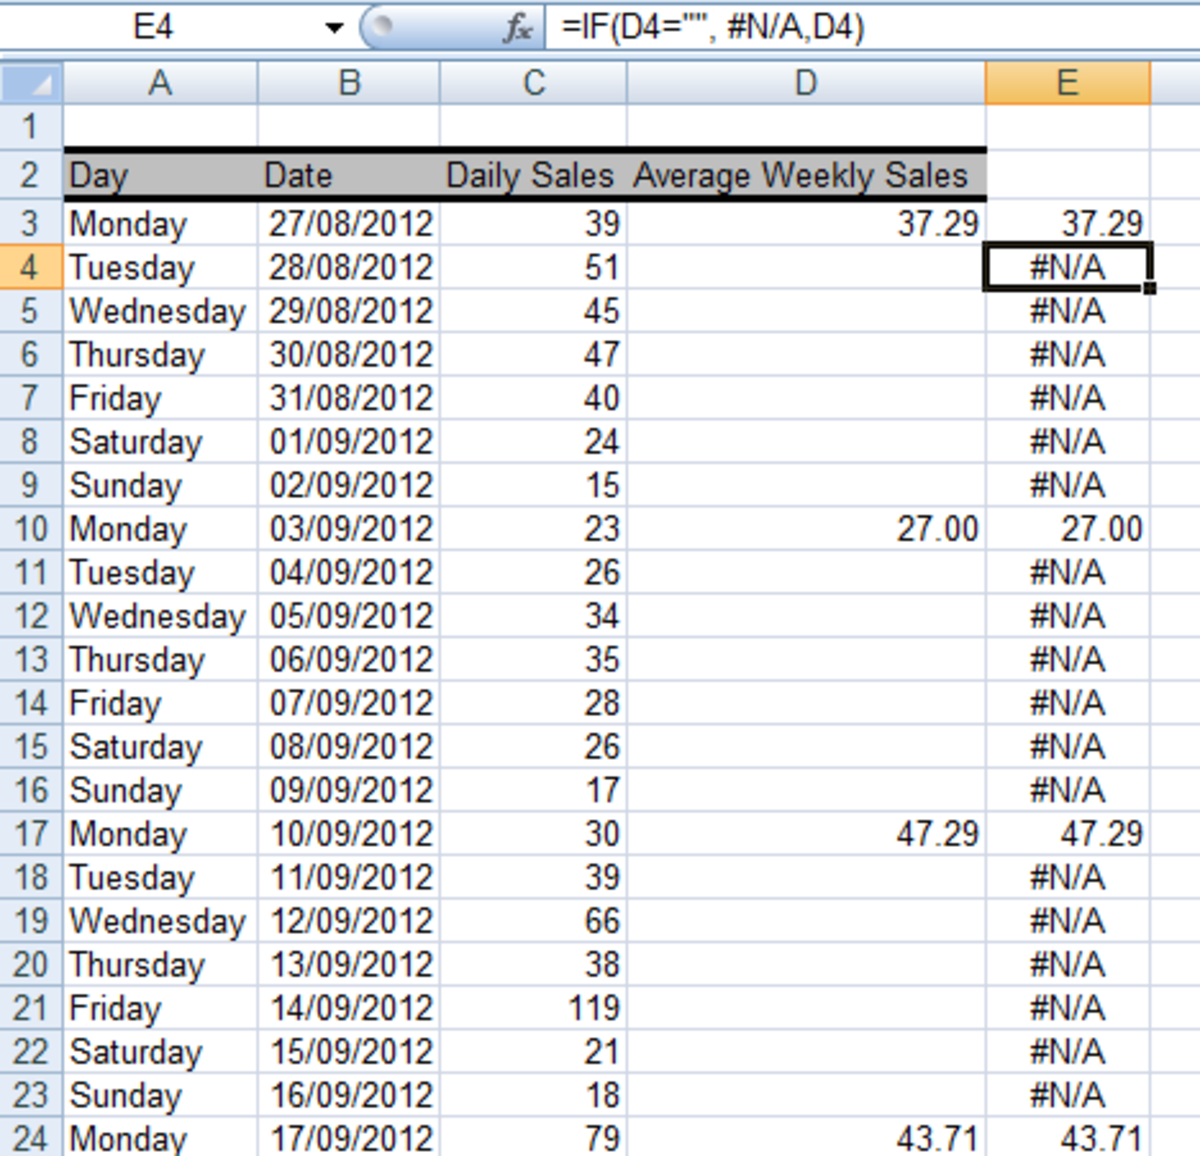 Ediblewildsus  Splendid How To Get Excel  And  To Ignore Empty Cells In A Chart Or  With Extraordinary Using The If Function In A Formula To Convert Empty Cells To Na With Awesome Test Excel File Also Adobe Excel In Addition Microsoft Excel Index And Net Worth Spreadsheet Excel As Well As Excel Function Today Additionally Excel Function For Range From Turbofuturecom With Ediblewildsus  Extraordinary How To Get Excel  And  To Ignore Empty Cells In A Chart Or  With Awesome Using The If Function In A Formula To Convert Empty Cells To Na And Splendid Test Excel File Also Adobe Excel In Addition Microsoft Excel Index From Turbofuturecom